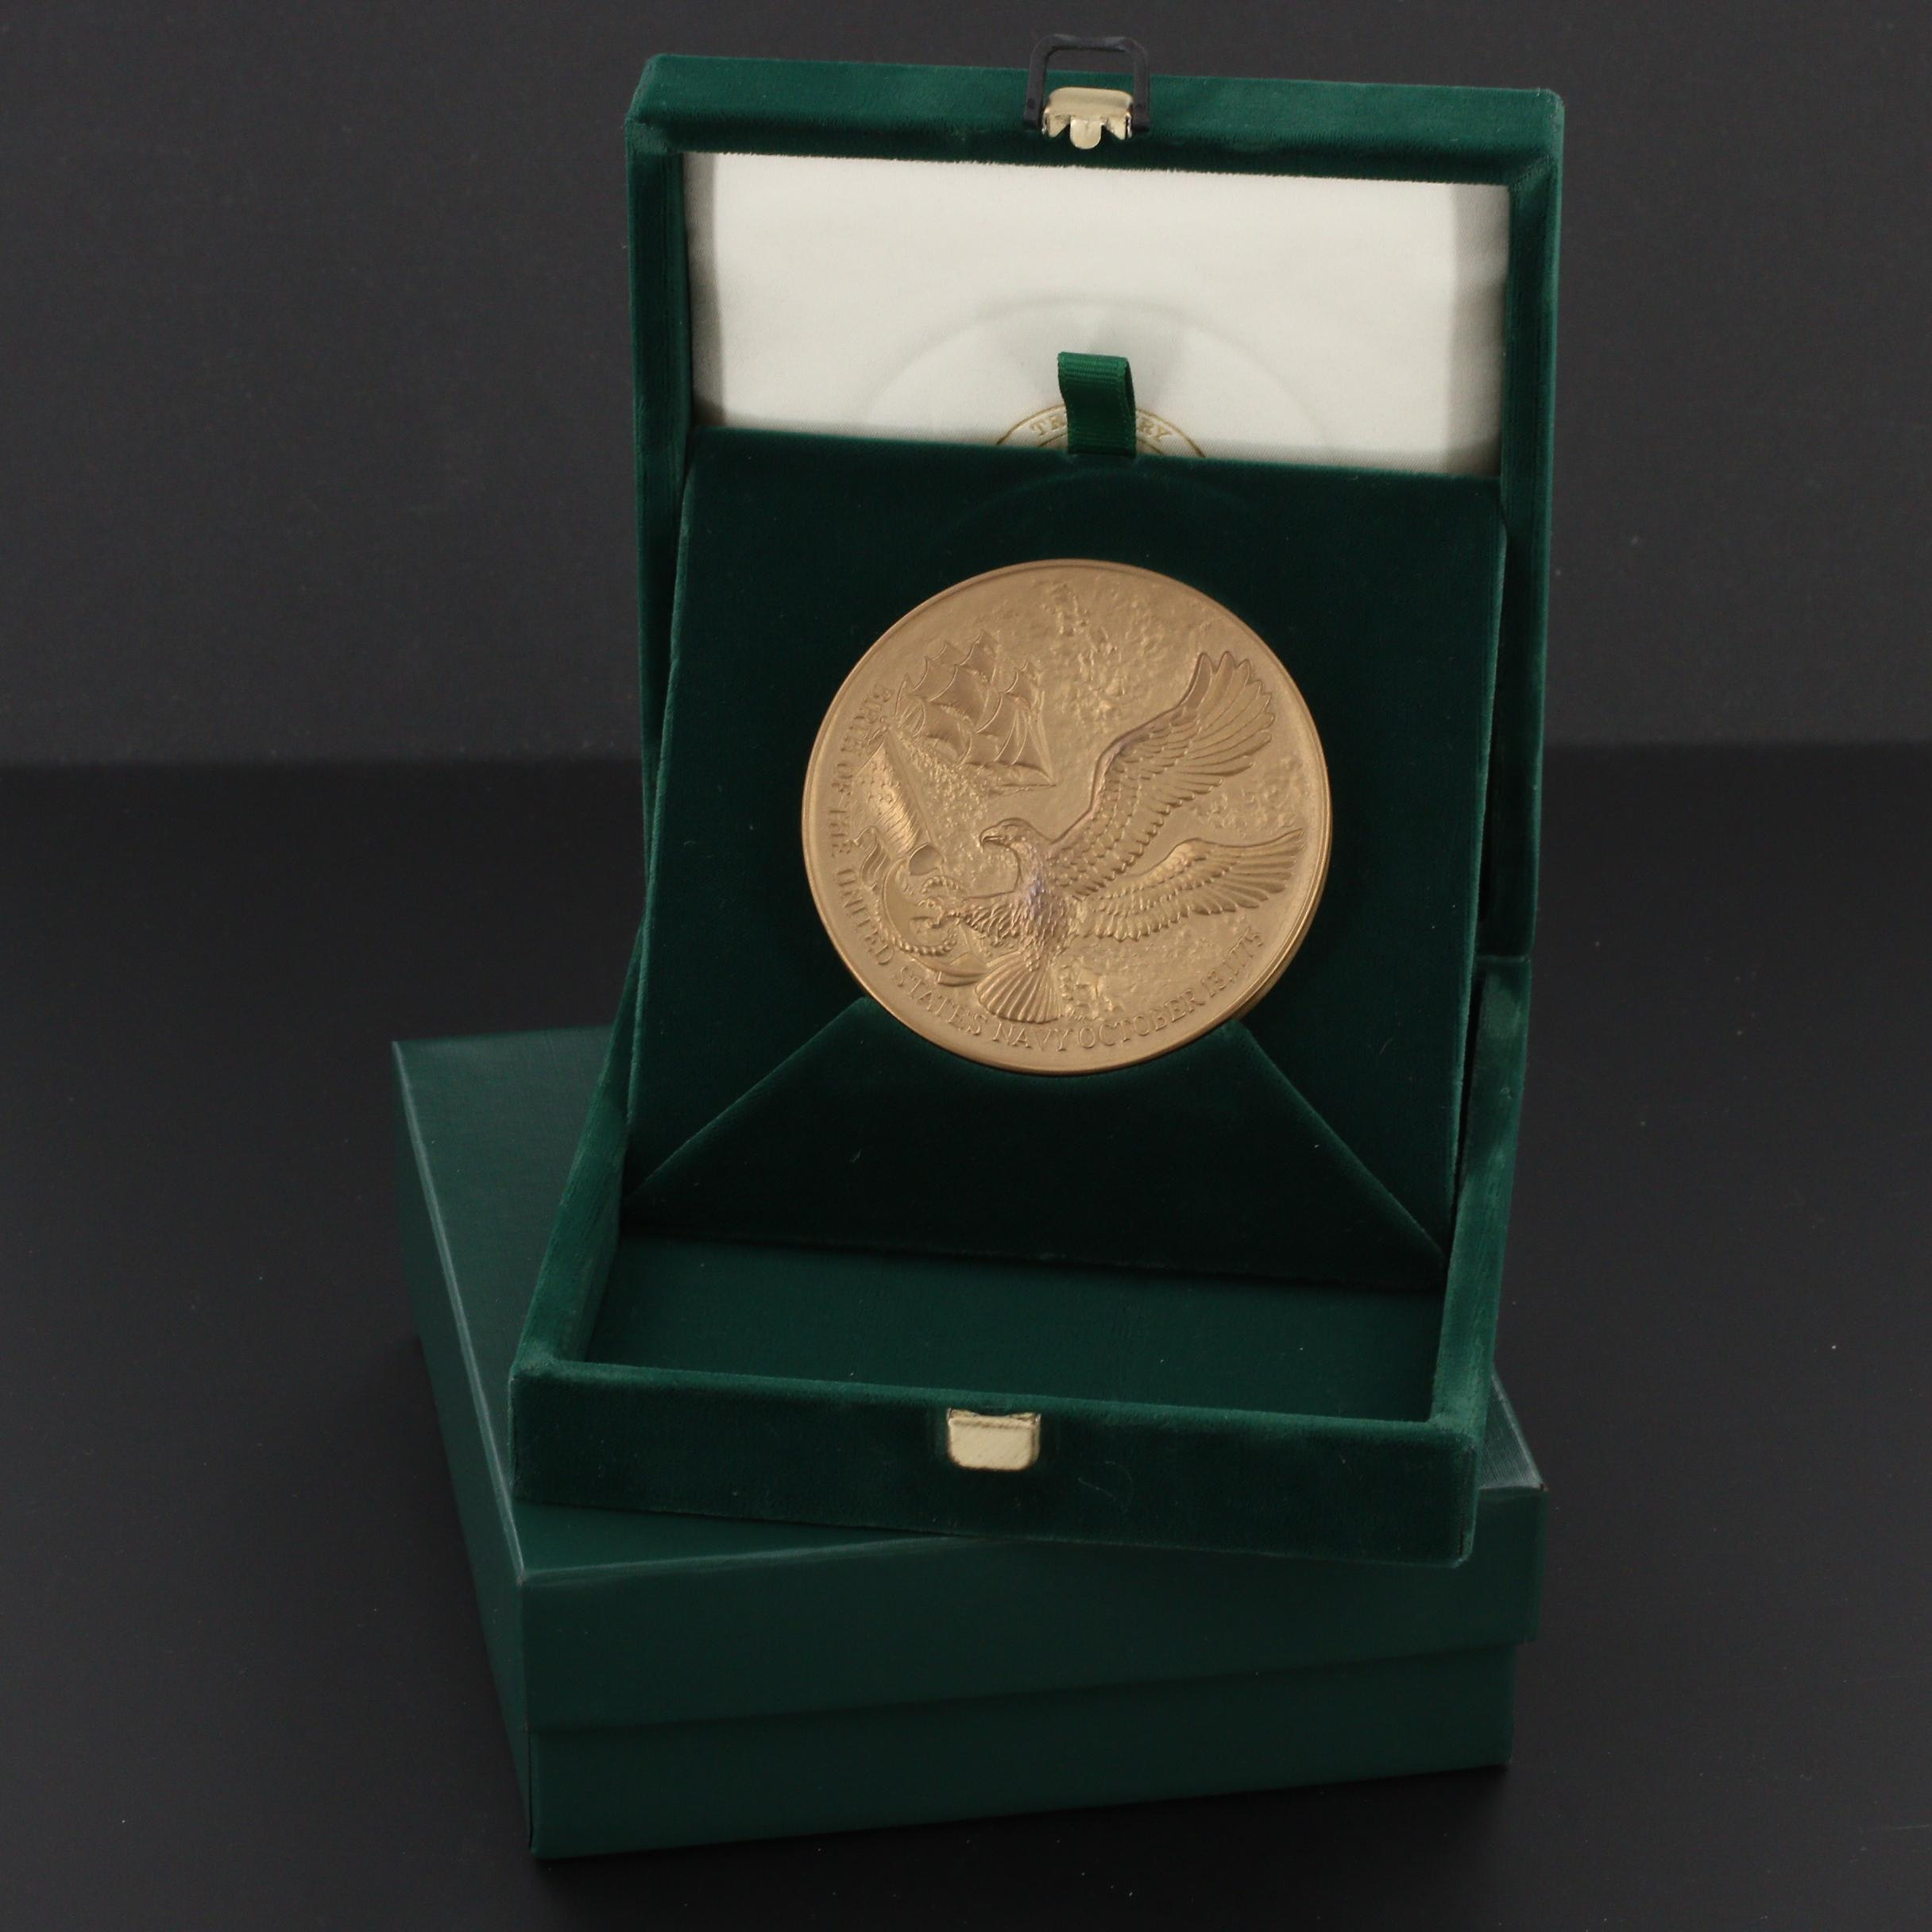 A U.S. Mint 1975 Navy Bicentennial Commemorative Bronze Medal